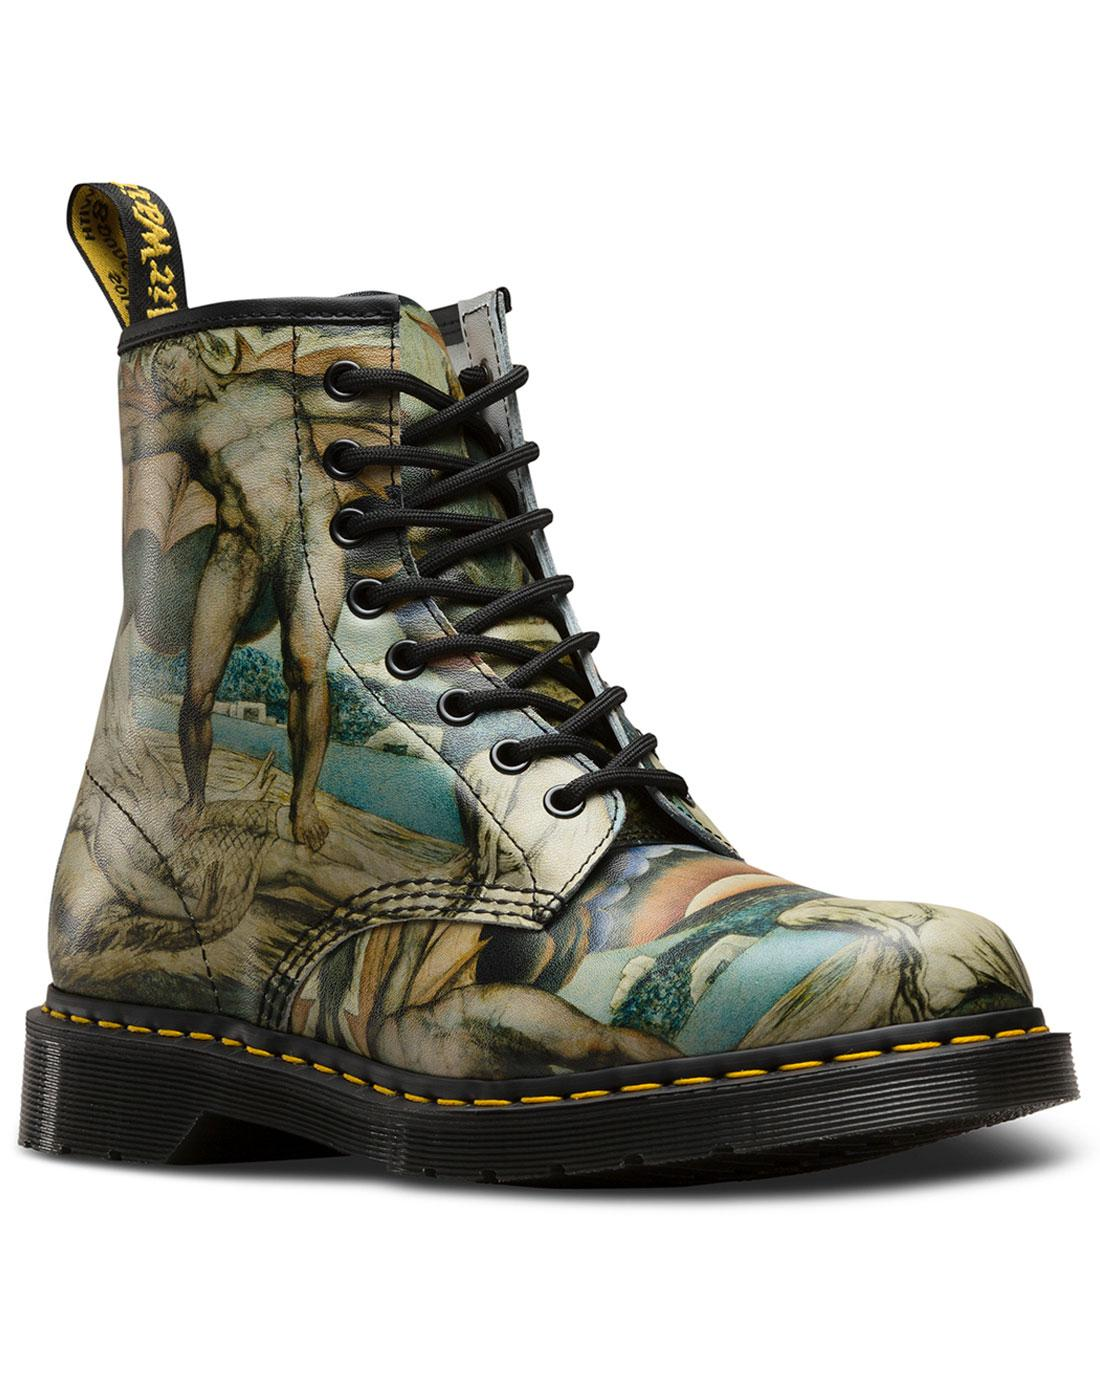 1460 William Blake DR MARTENS Retro 8 Eyelet Boots